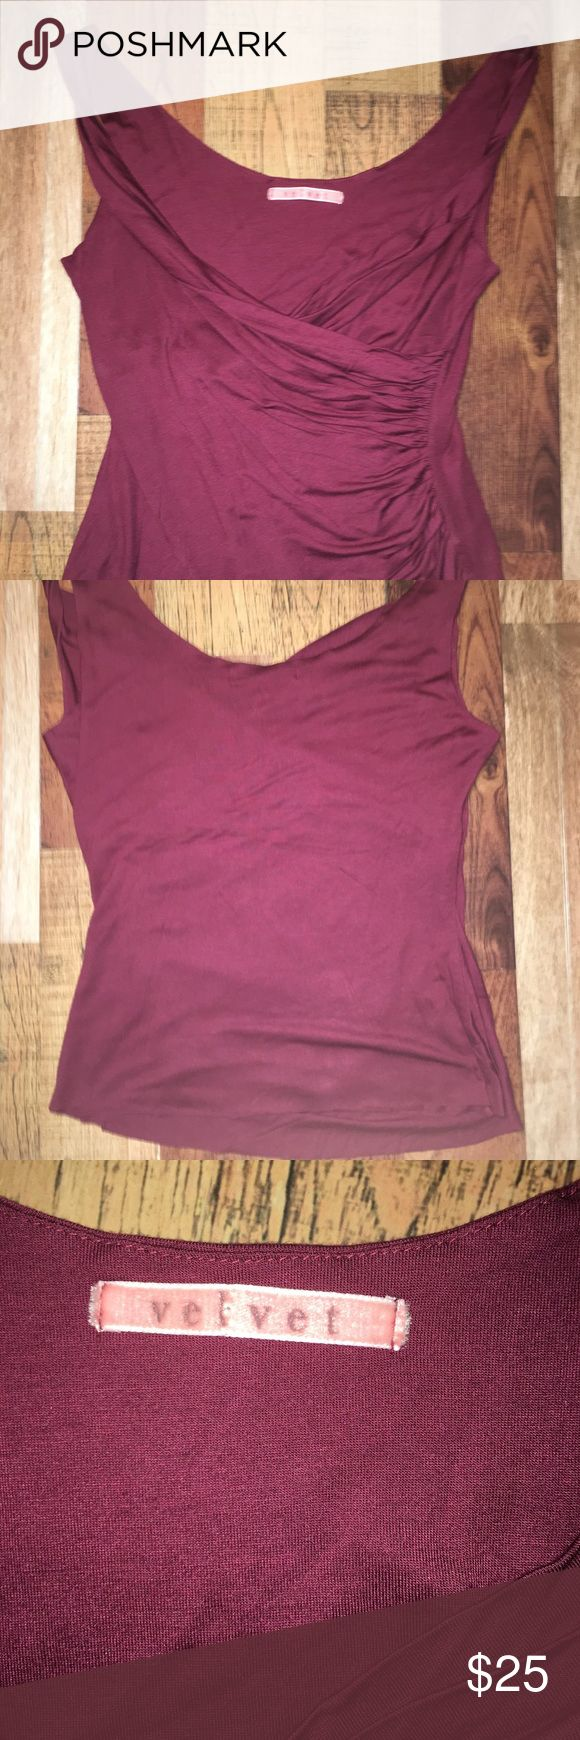 Anthropologie Velvet by Graham & Spencer. Sz Sm Velvet by Graham & Spencer. Mulberry color top, Amazing flattering cut and draping size small, perfect condition- no snags/tears/rips/stains or other weirdness - ready to ship😎 Velvet by Graham & Spencer Tops